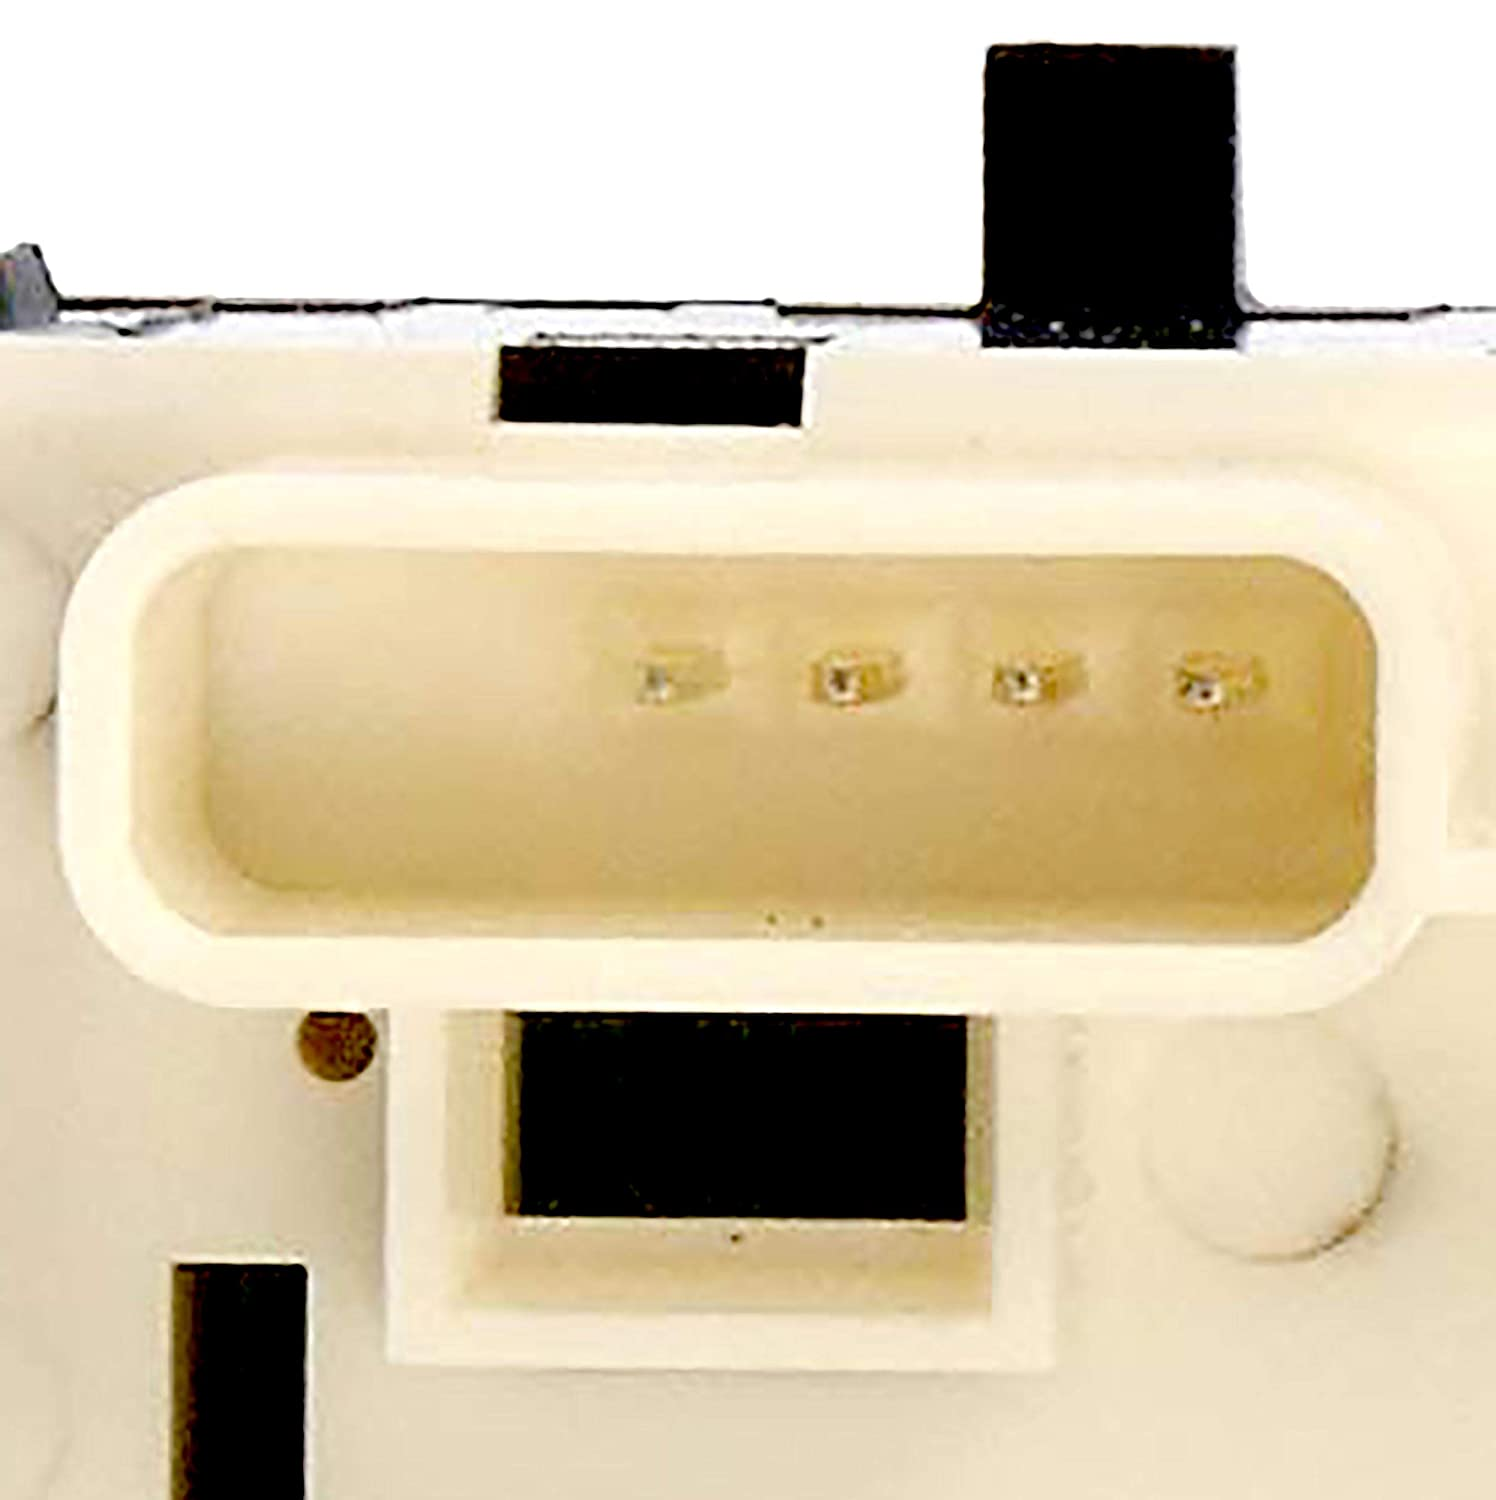 Apdty 012164 Four Wheel Drive 4wd Selector Switch 3 Chevy Avalanche Wiring Diagram 4x4 Swith Button Without Auto Fits 2003 2007 Silverado Pickup Suburban Tahoe Gmc